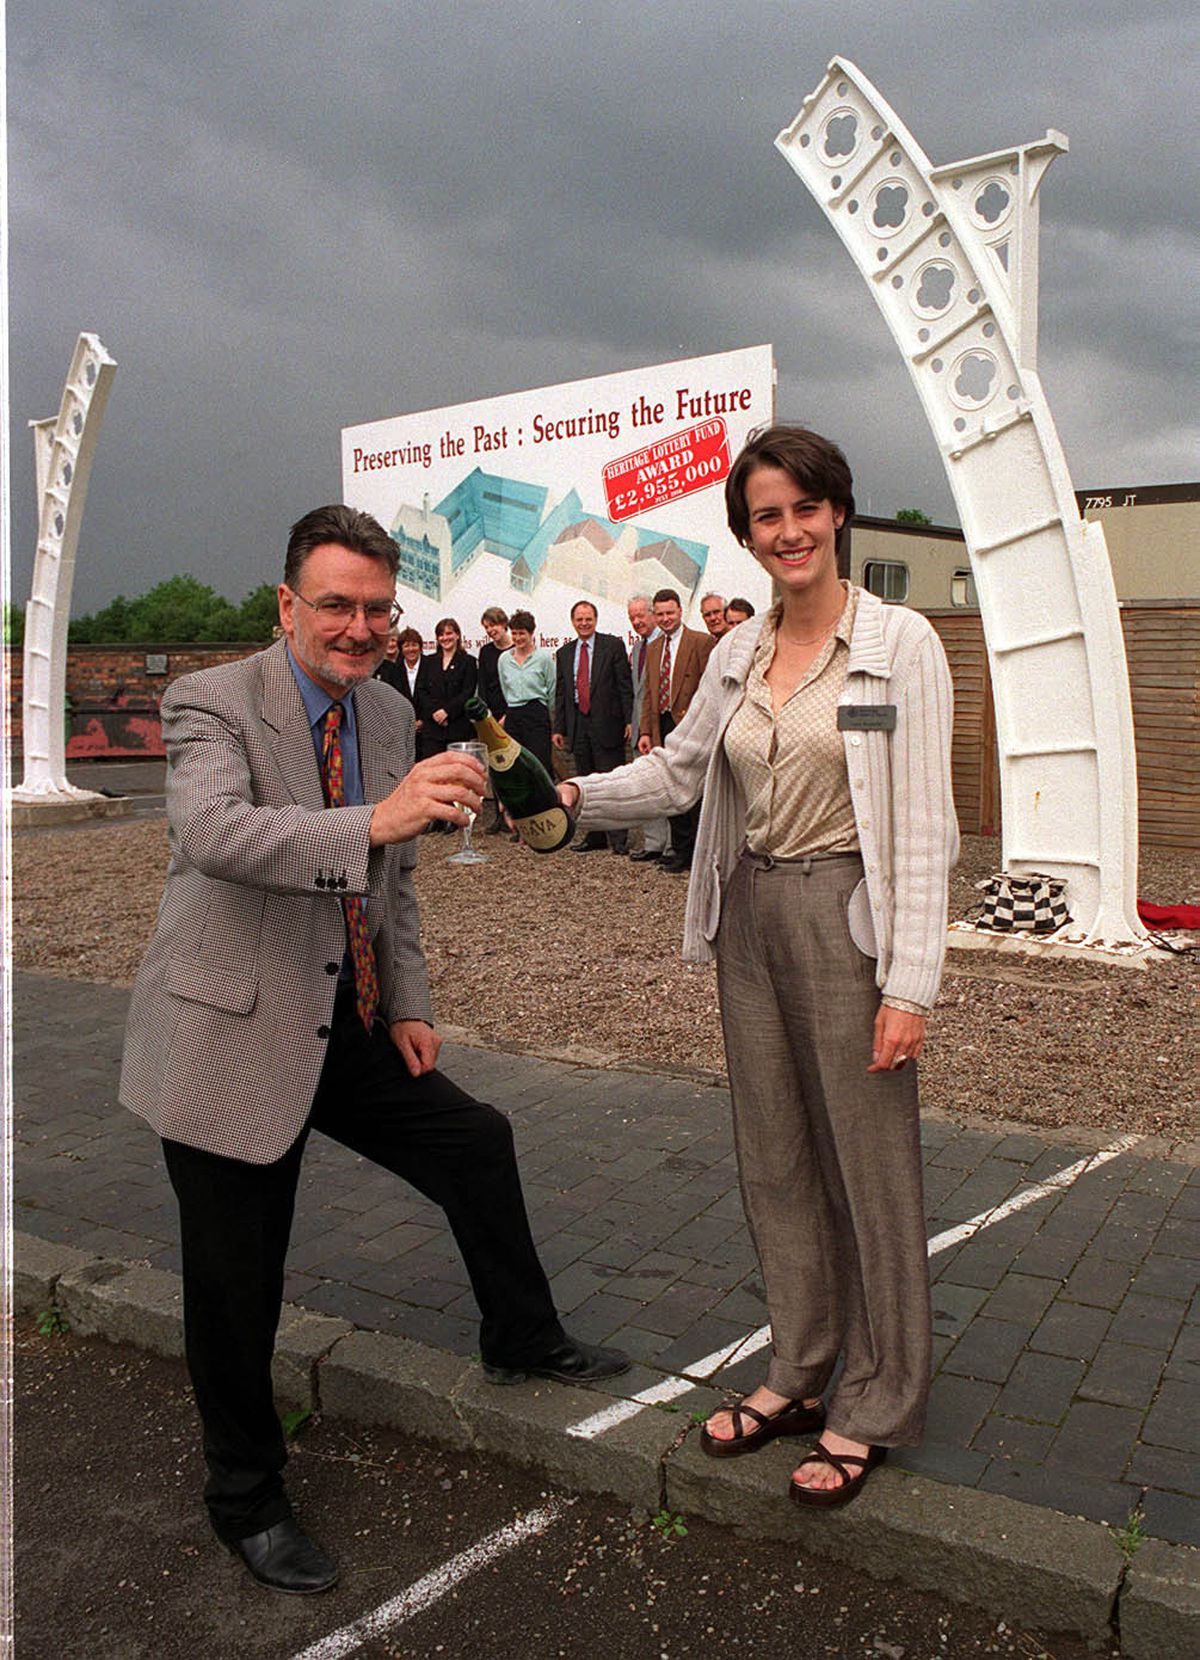 Then museum director Ian Walden and Katie Norgrove, case officer for the Heritage lottery fund, celebrating the £2.9 million lottery grant to the Black Country Living Museum, Dudley, in 1998 to finance the Rolfe Street baths project